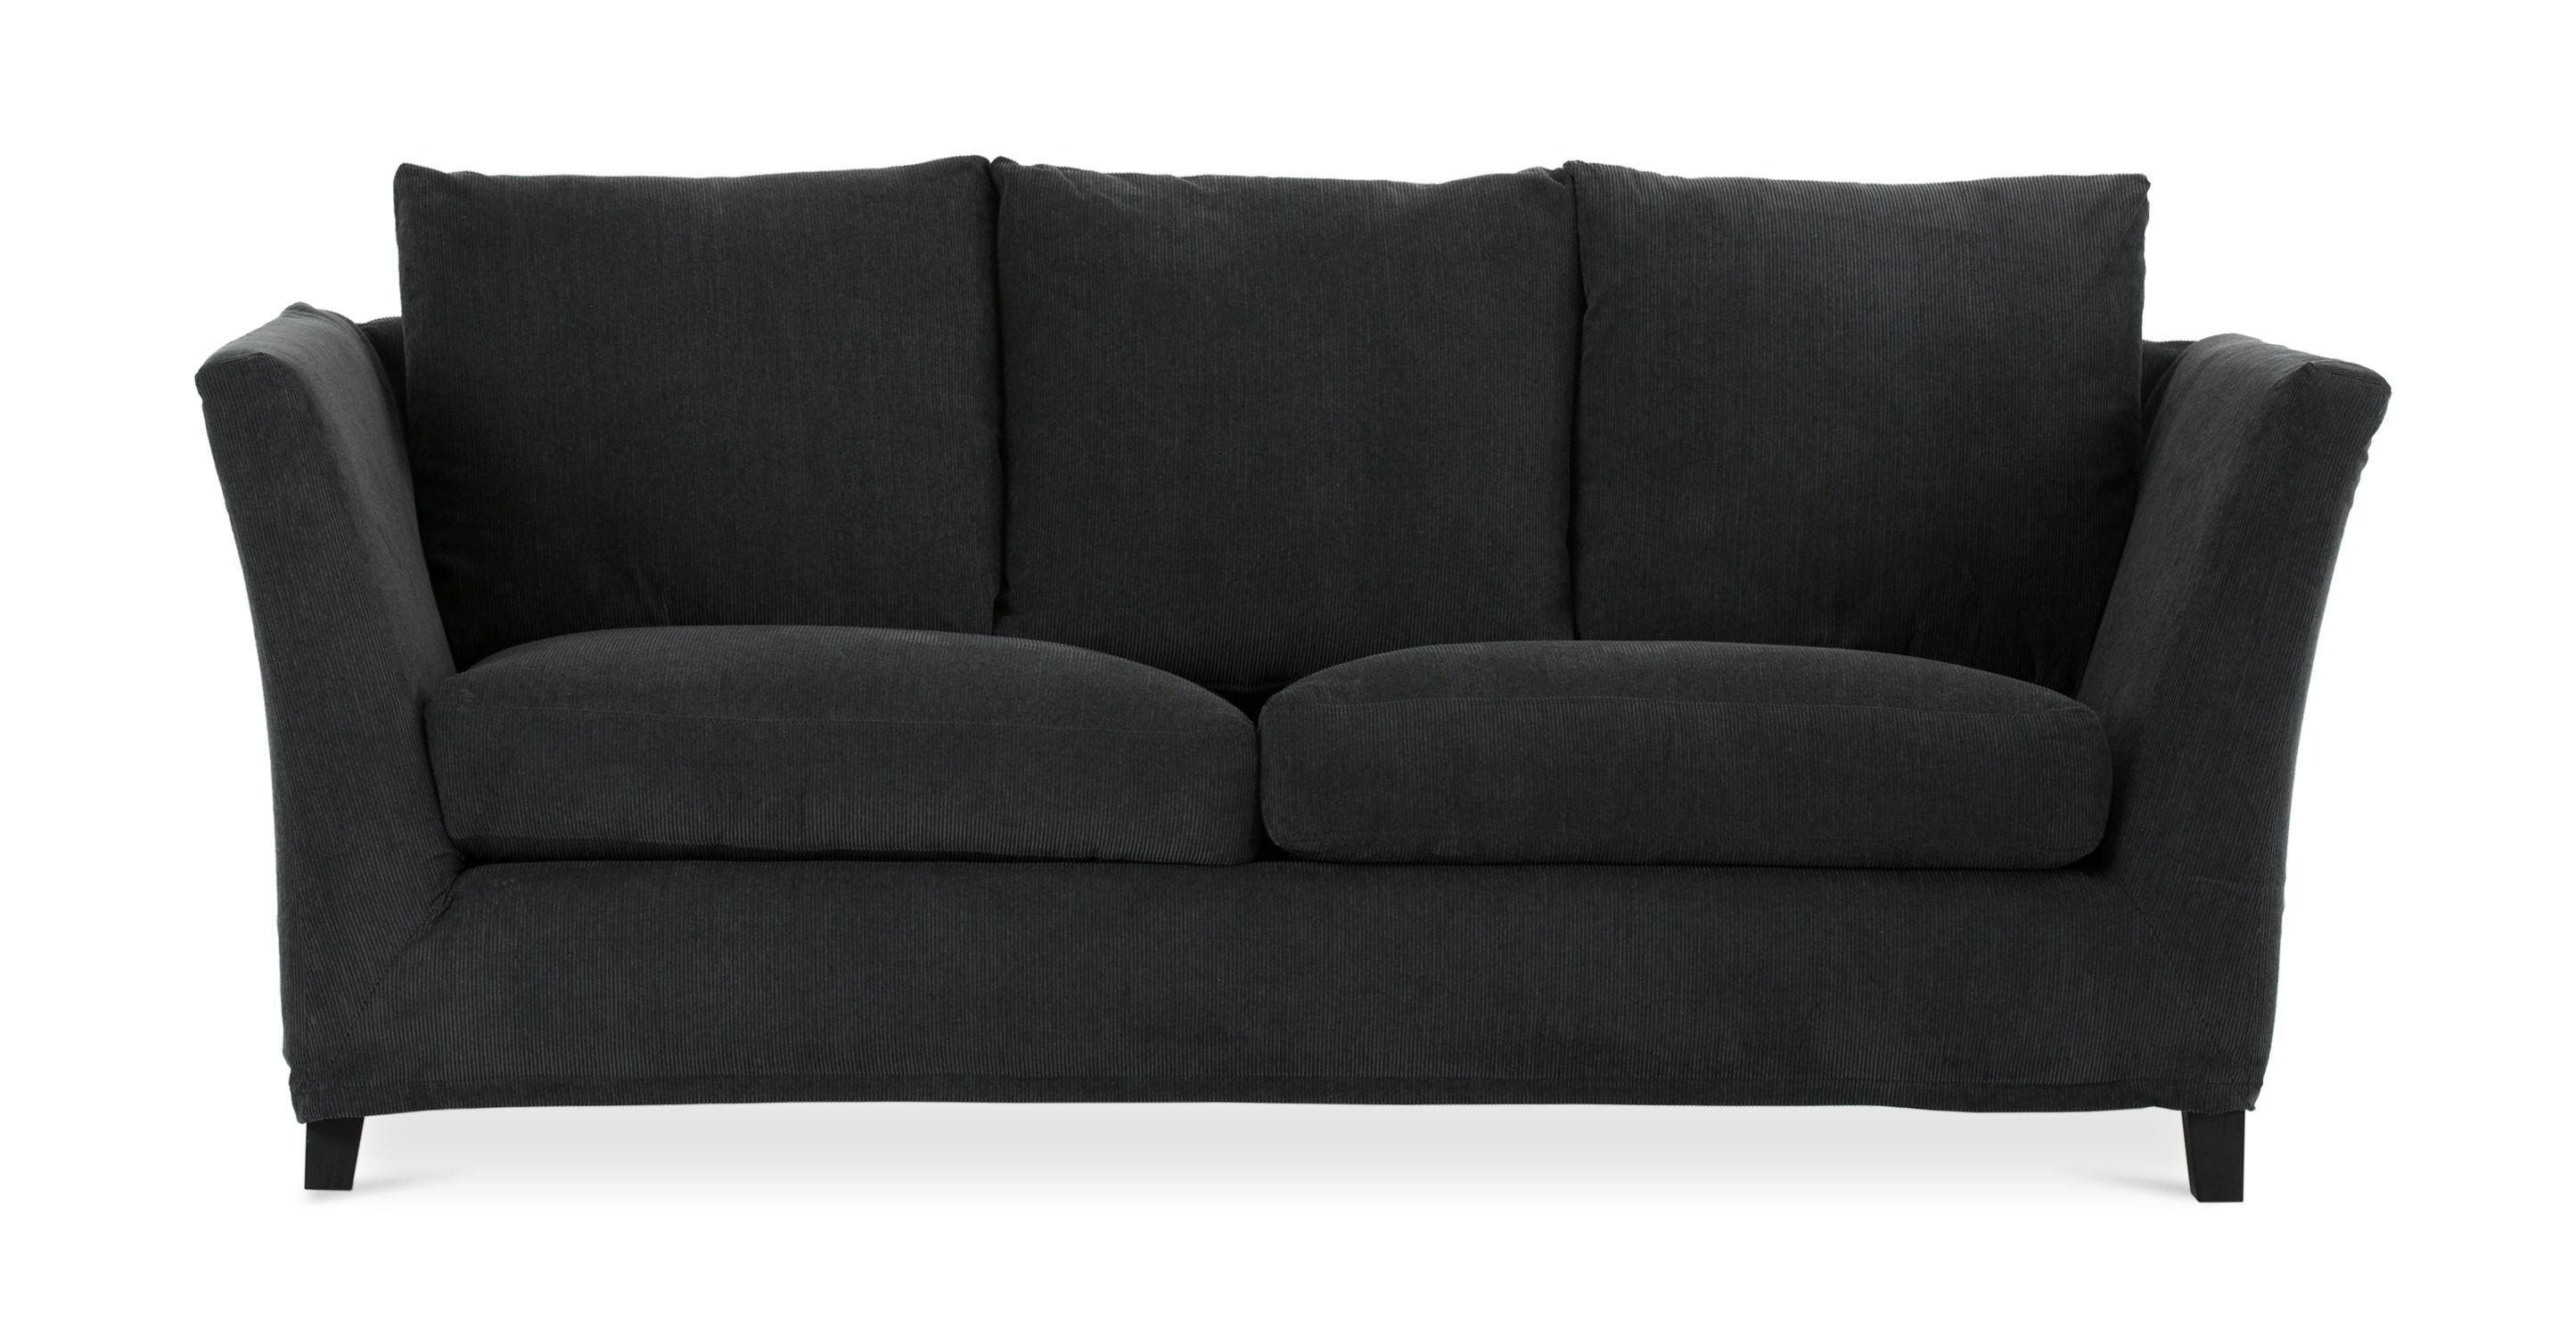 midnight blue sofa click clack bed offers long island sofas article modern